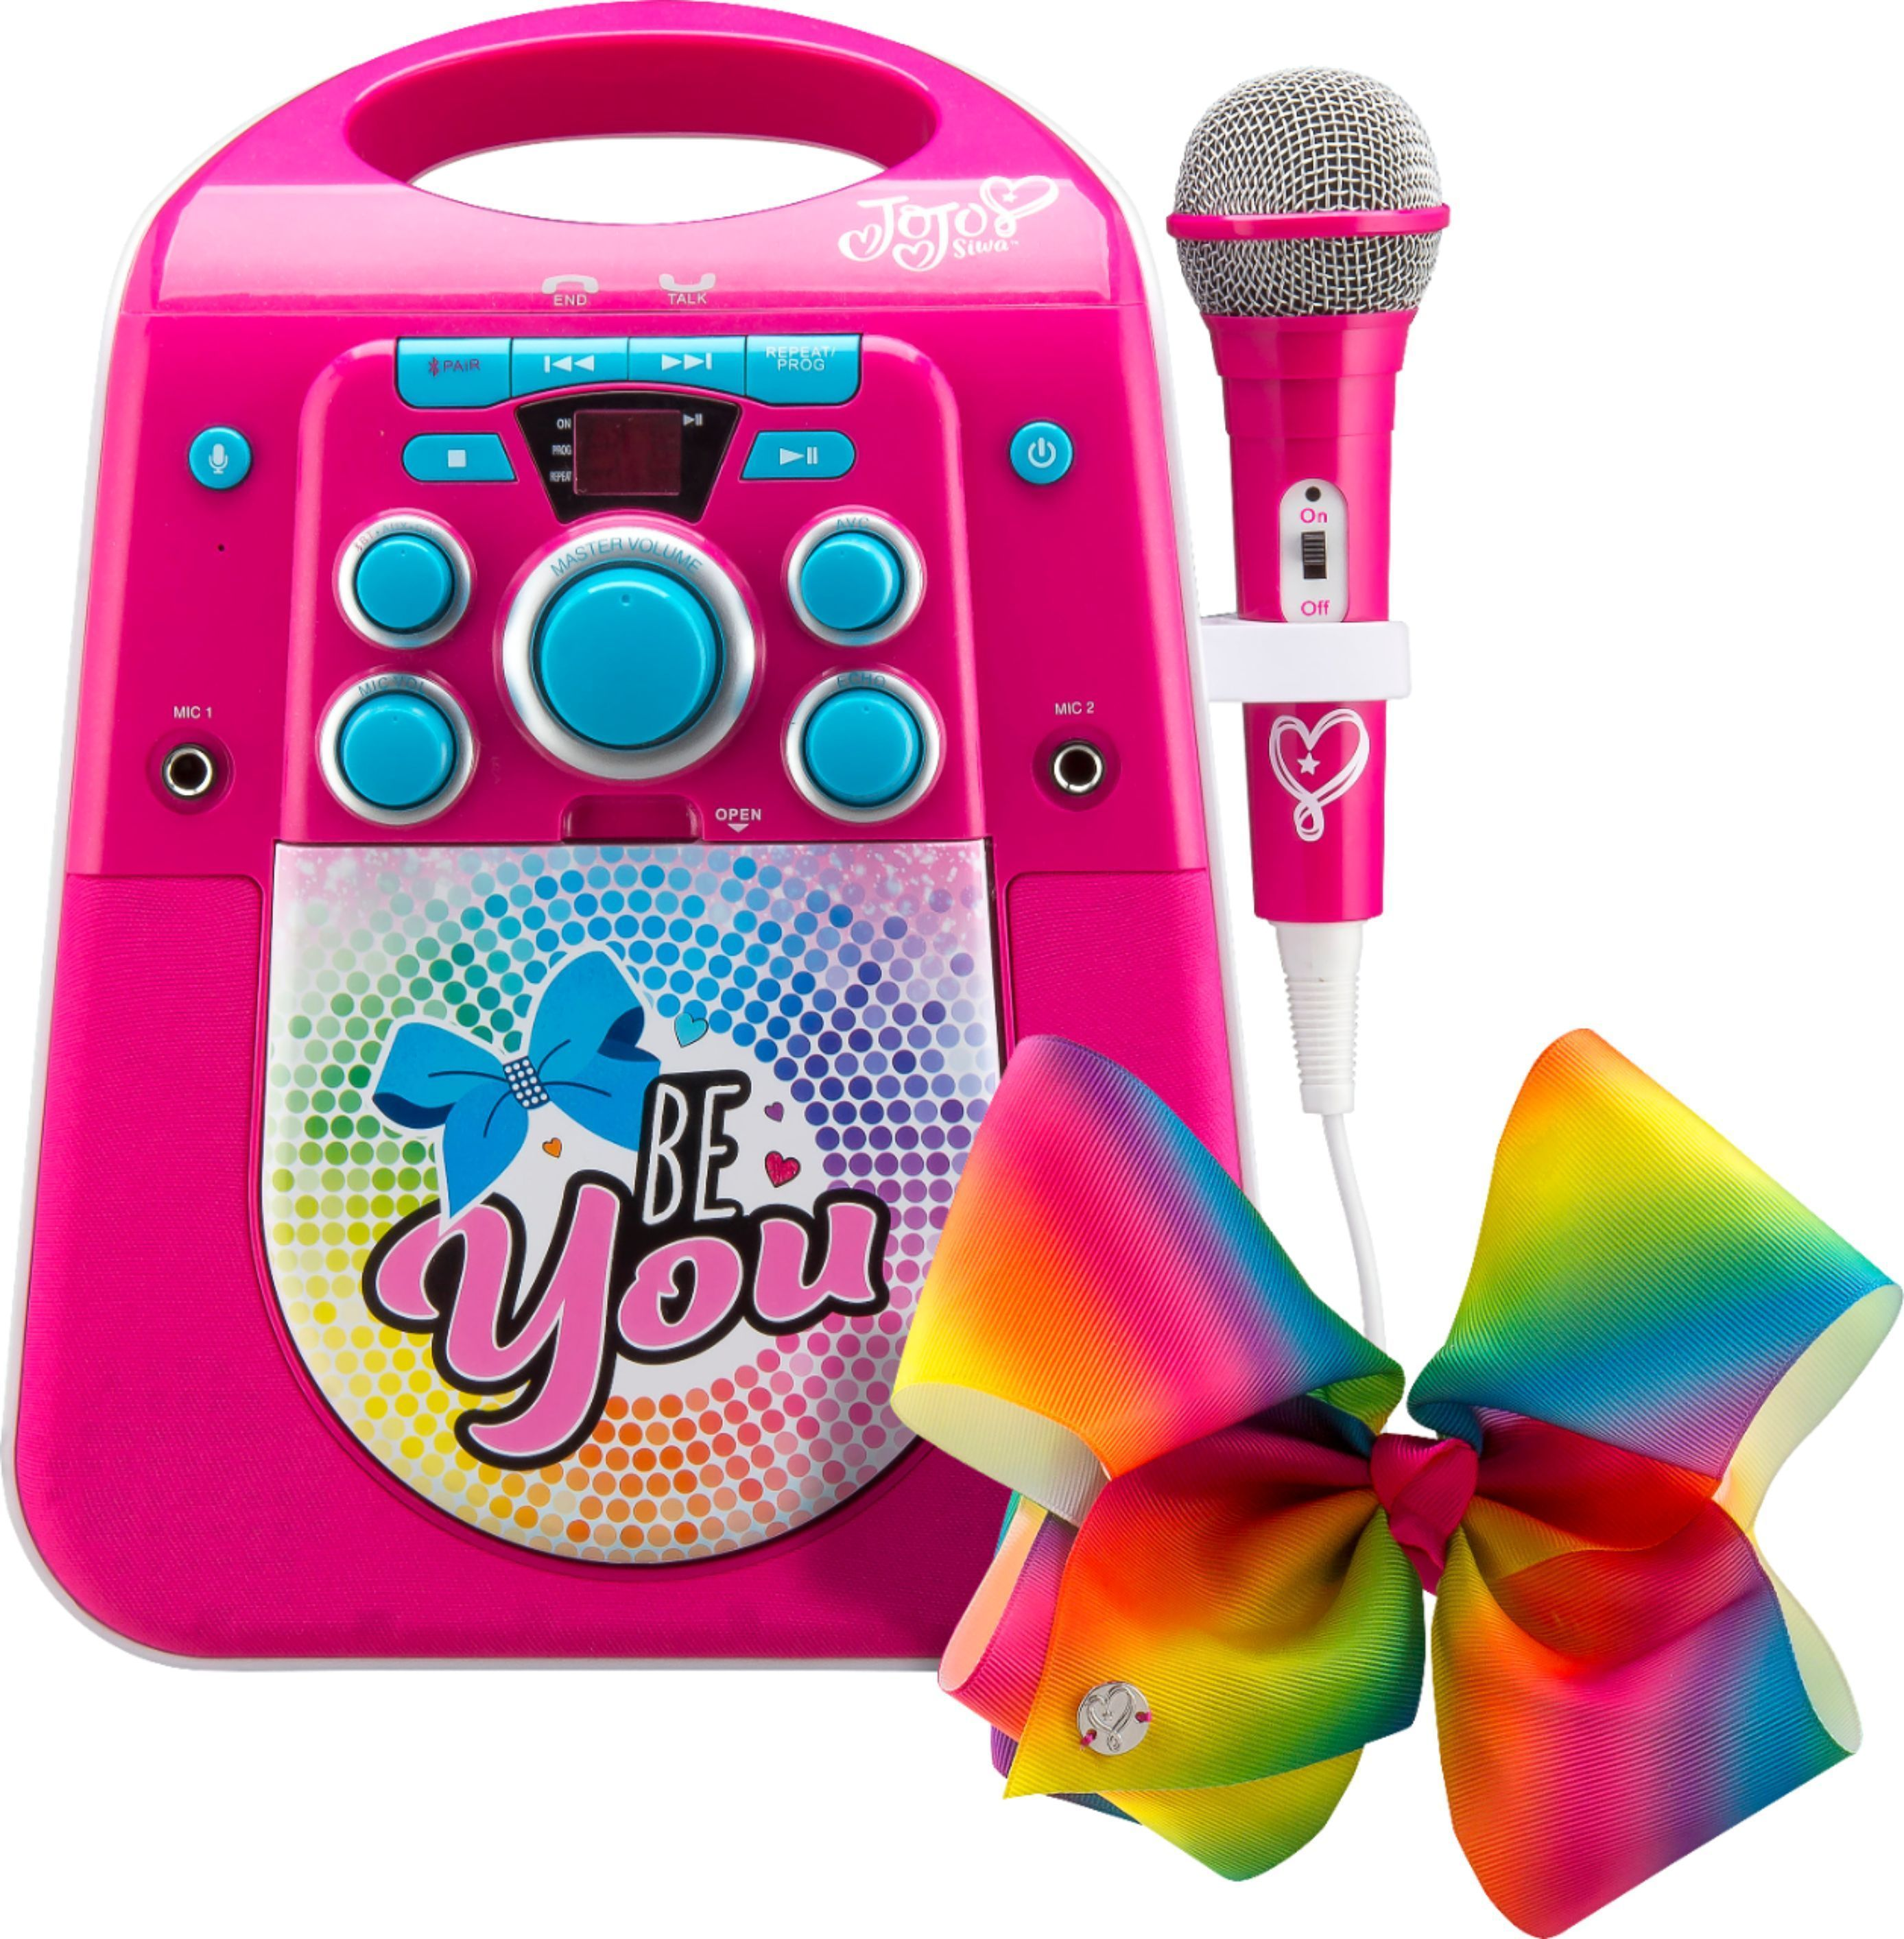 Shop eKids JoJo Siwa Portable Karaoke System Pink at Best Buy. Find low everyday prices and buy online for delivery or in-store pick-up. Price Match Guarantee. #karaokesystem Shop eKids JoJo Siwa Portable Karaoke System Pink at Best Buy. Find low everyday prices and buy online for delivery or in-store pick-up. Price Match Guarantee. #karaokesystem Shop eKids JoJo Siwa Portable Karaoke System Pink at Best Buy. Find low everyday prices and buy online for delivery or in-store pick-up. Price Match G #karaokesystem